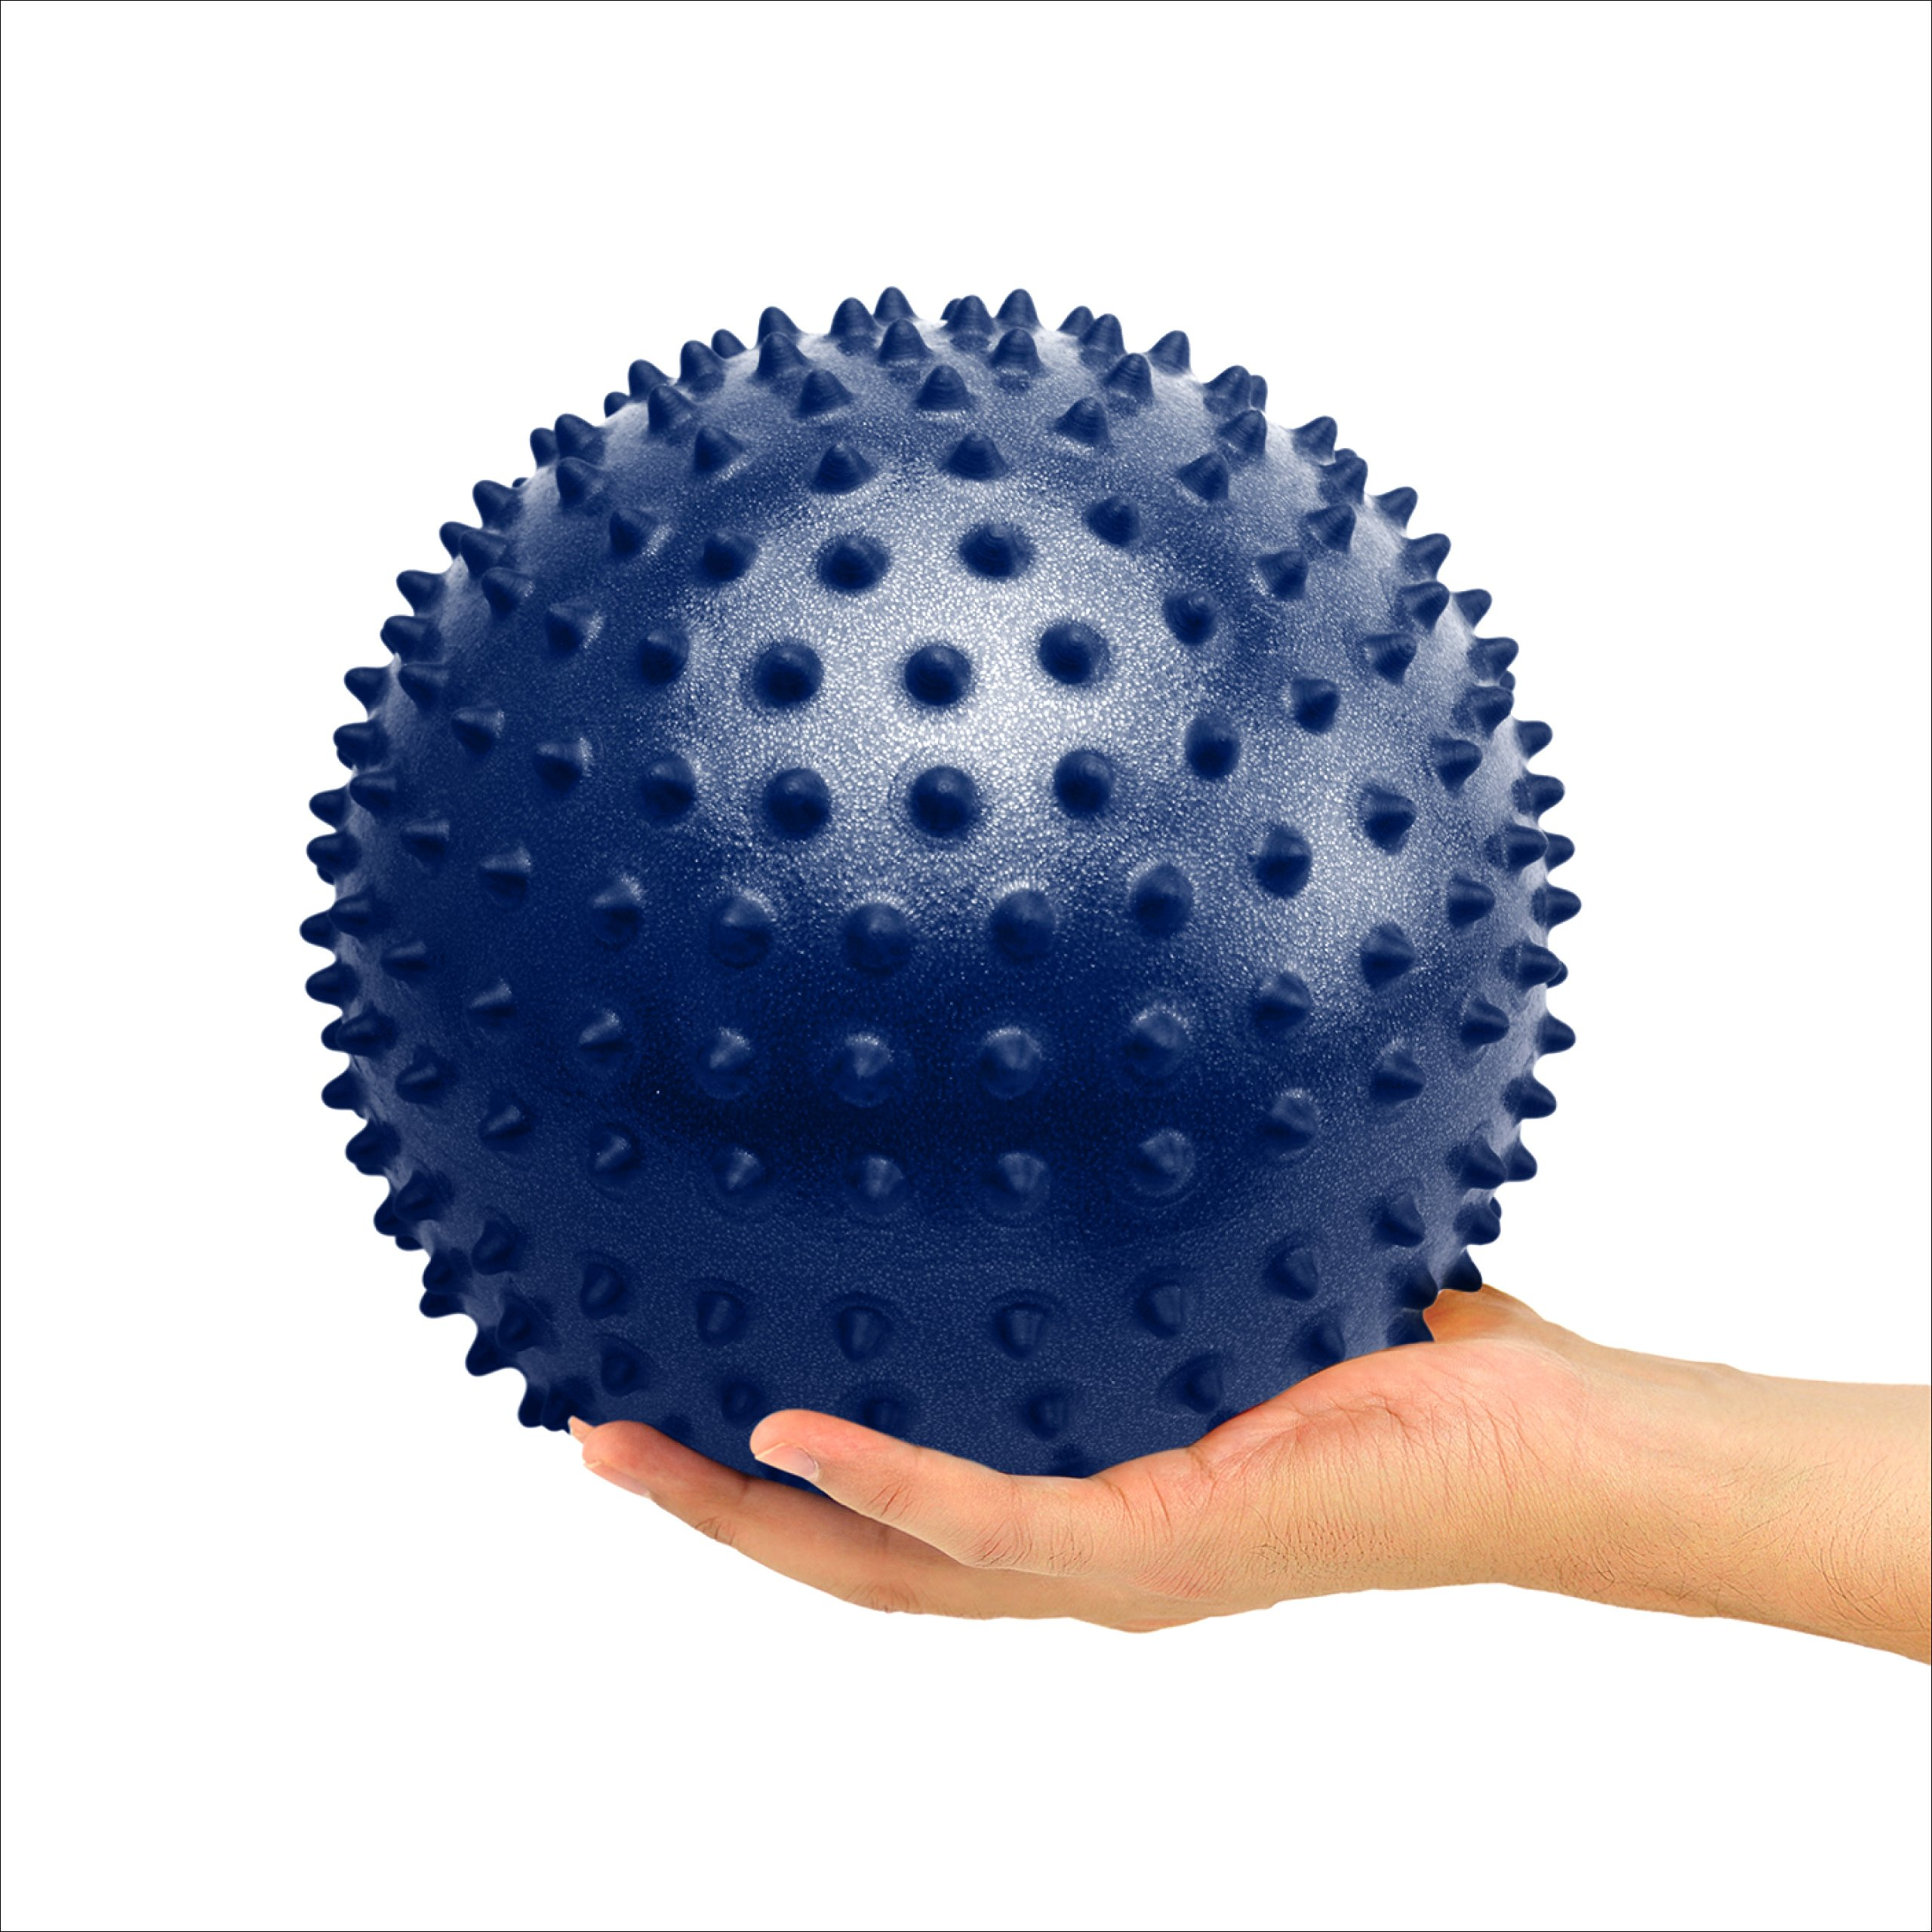 678825d6c5720 Cheap 25cm Pilates Mini Ball, find 25cm Pilates Mini Ball deals on ...